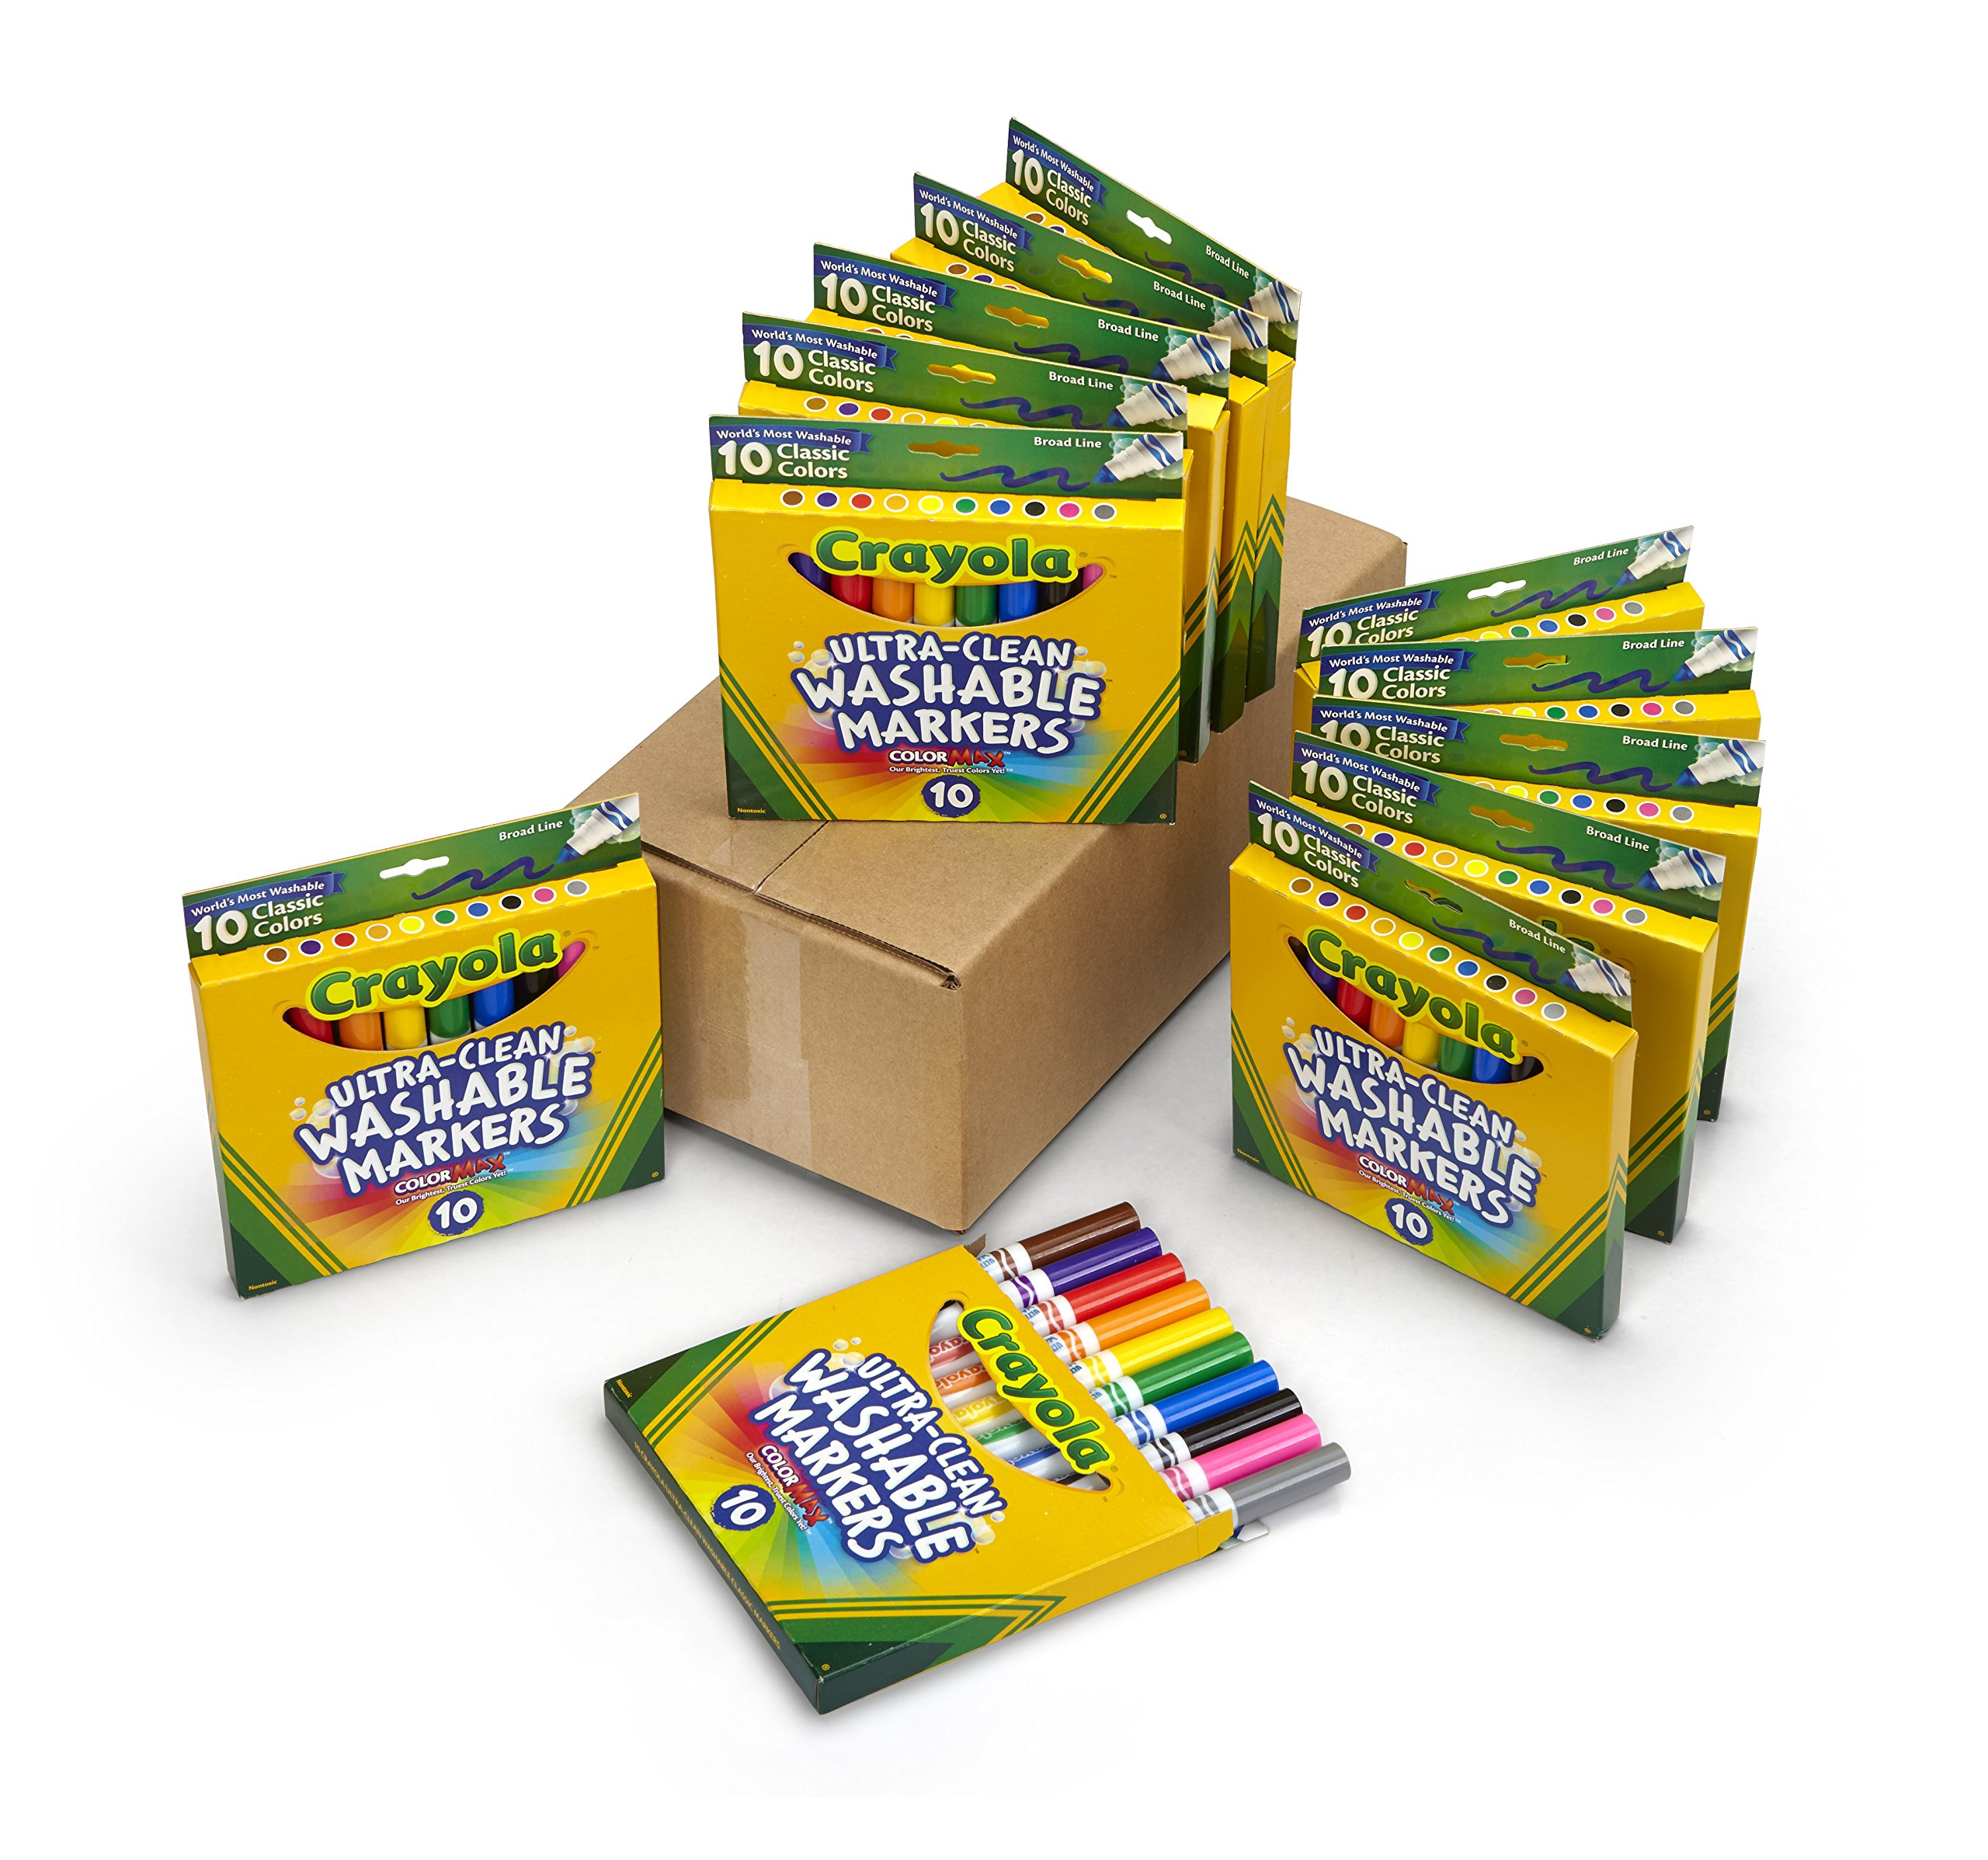 Crayola Ultra Clean Broad Line Markers, School Supplies, 12 Pack, 10 Assorted Colors by Crayola